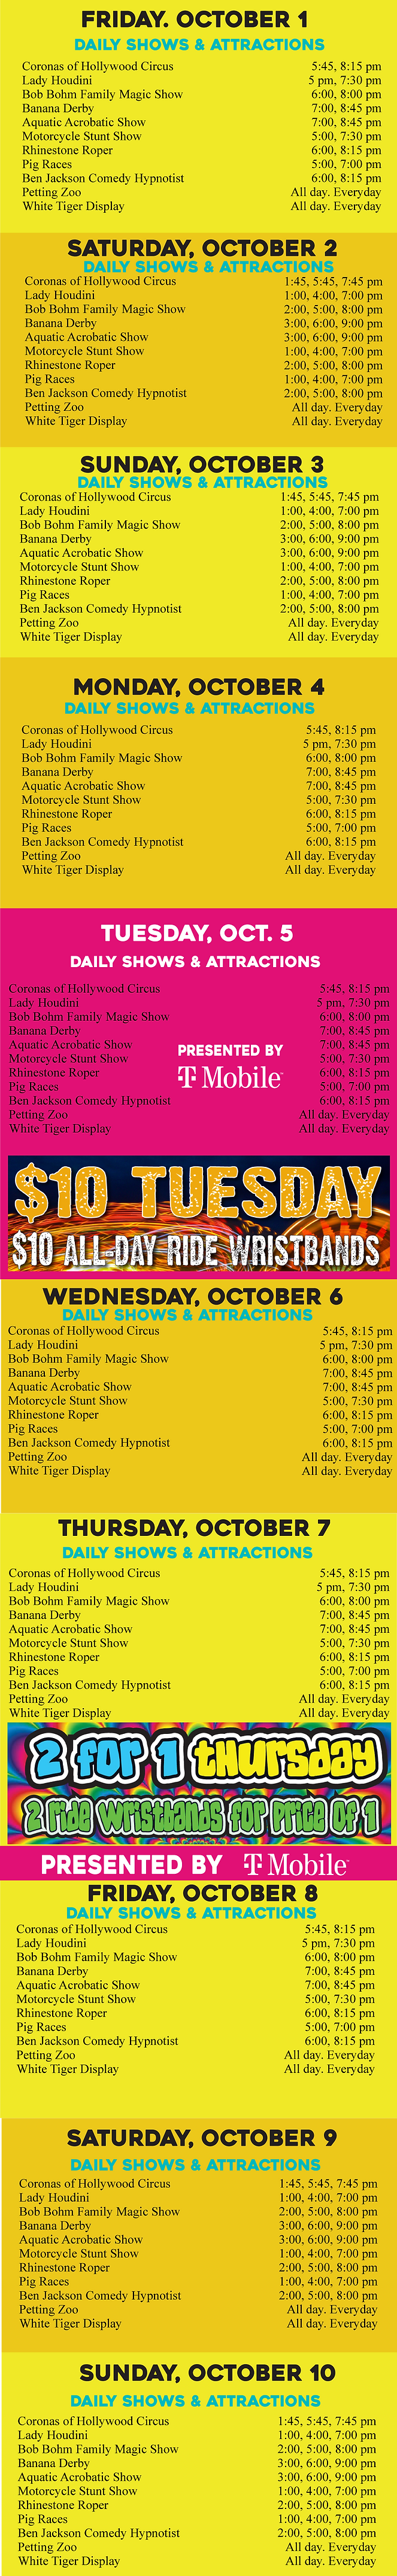 Attractions-schedule.png